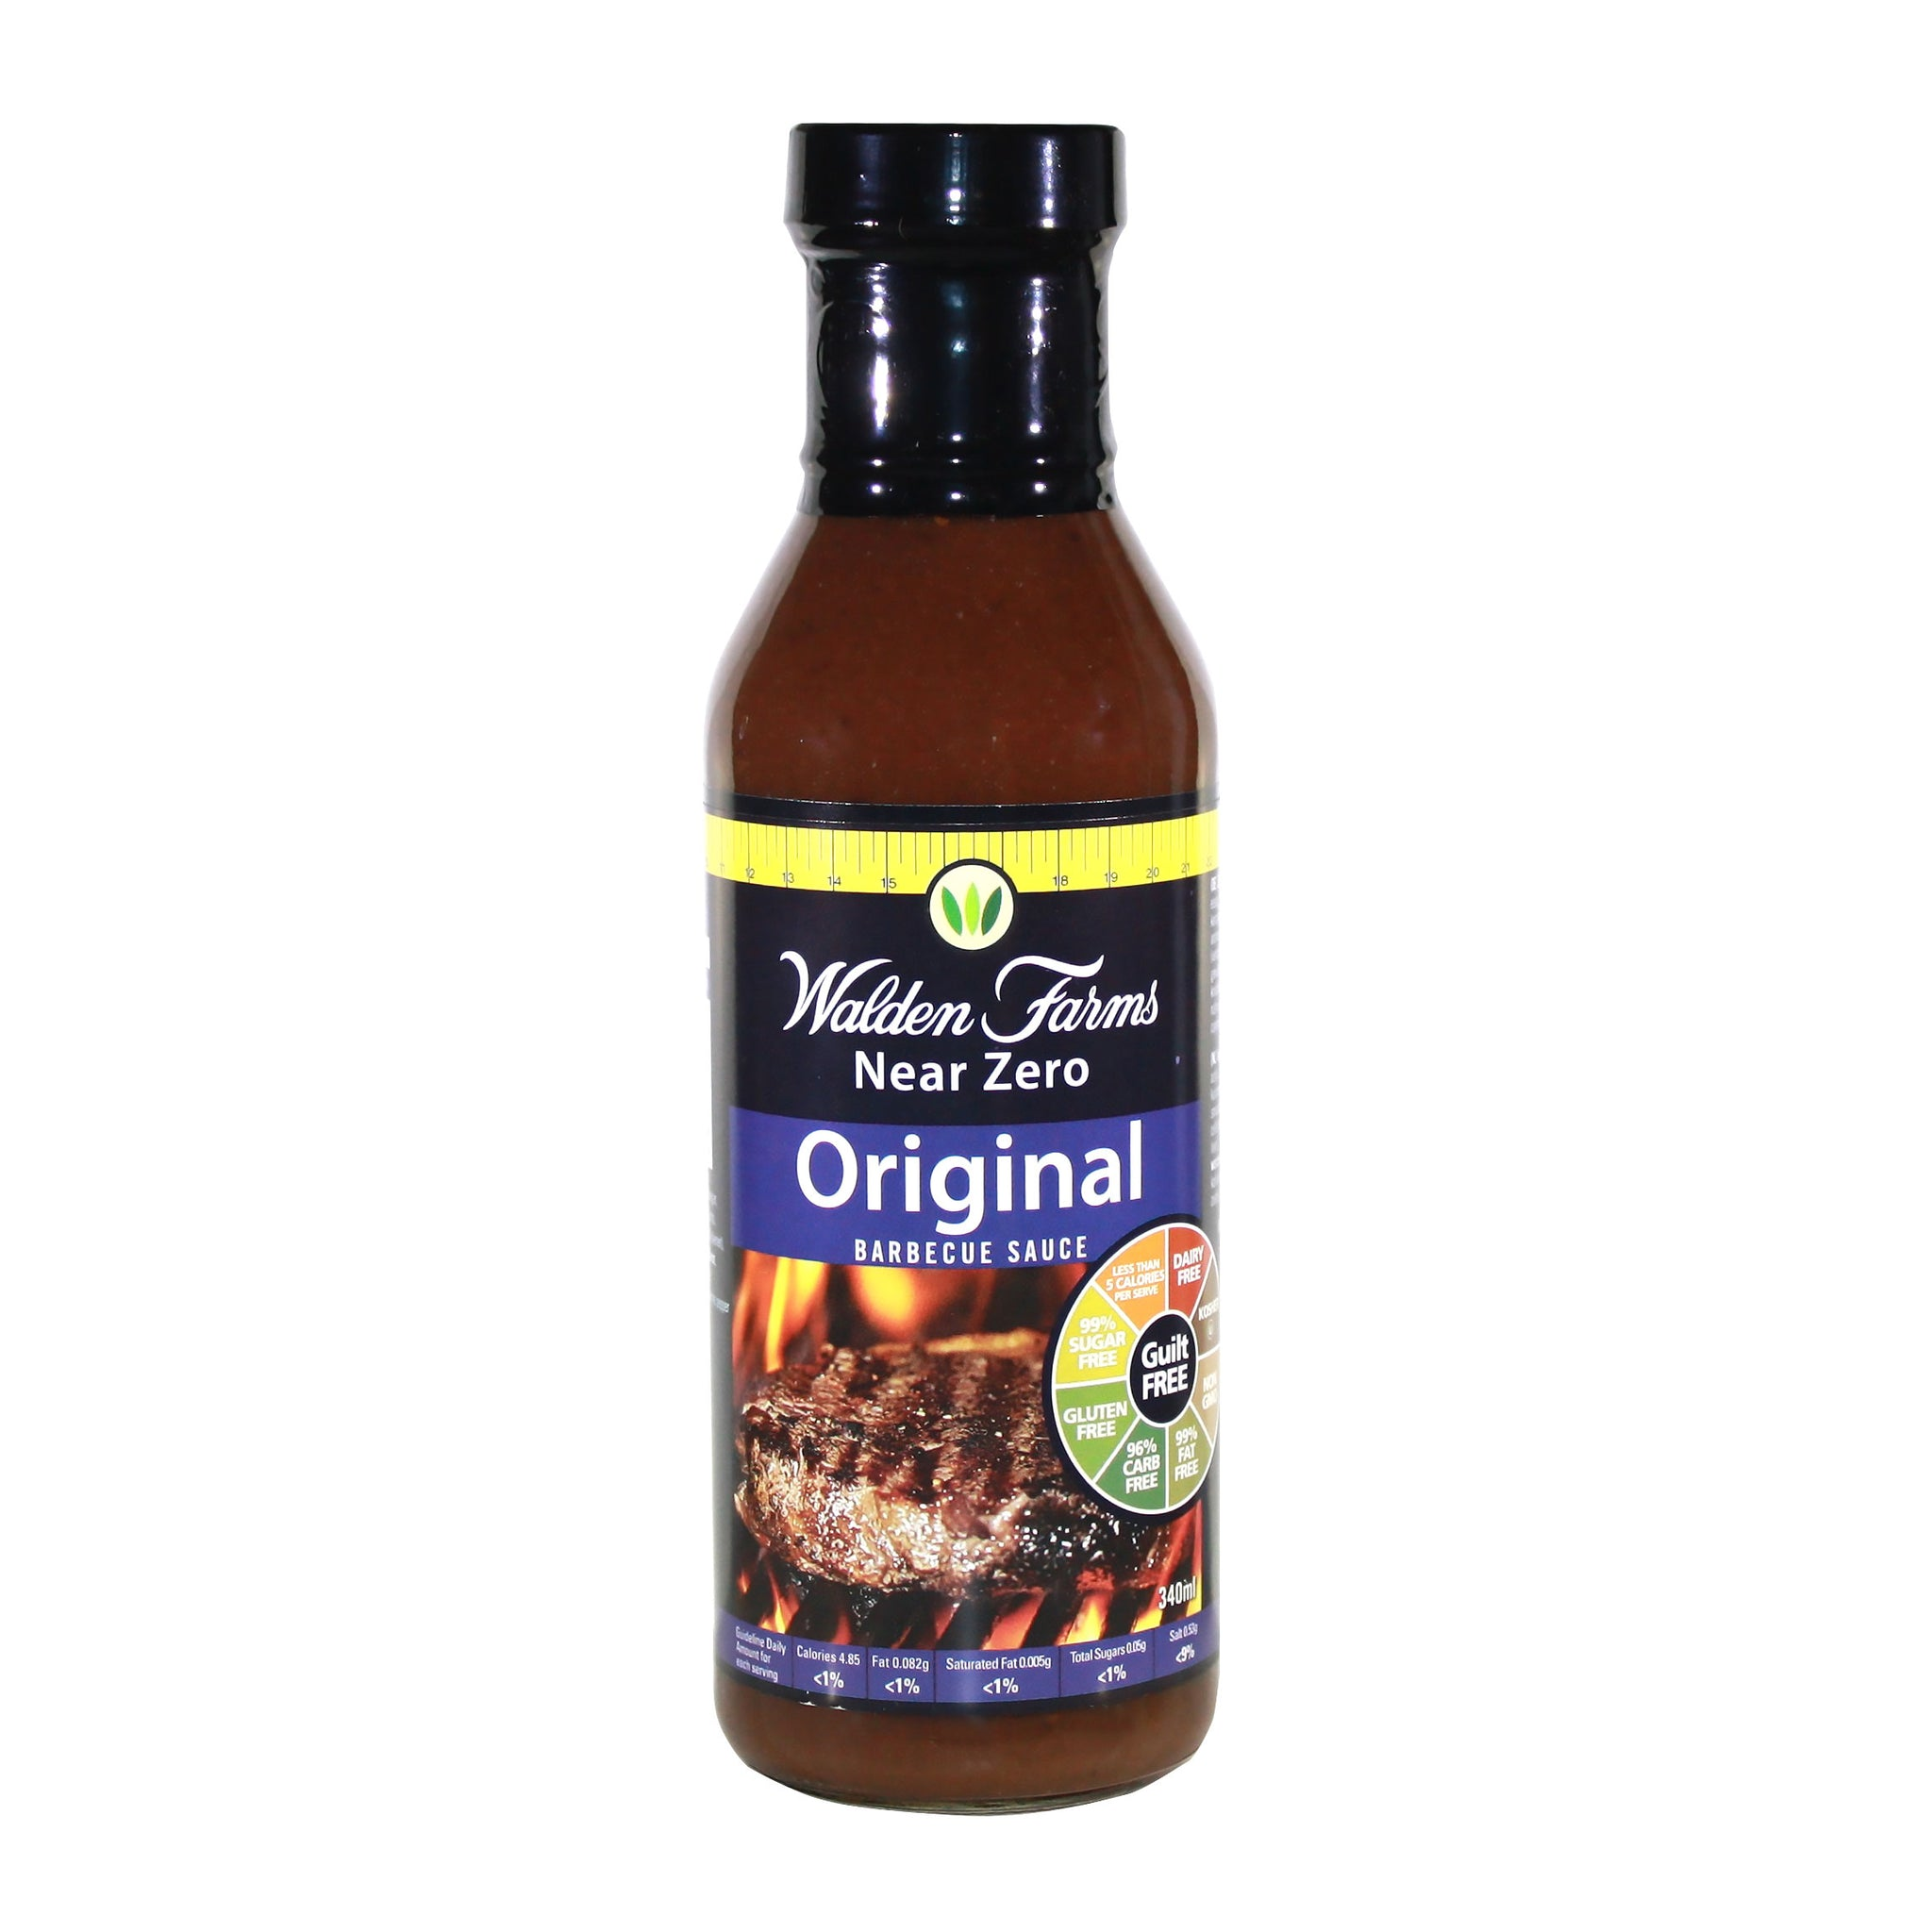 Dairy Free Vegan Original Barbecue Sauce with Near Zero Fat and Sugar